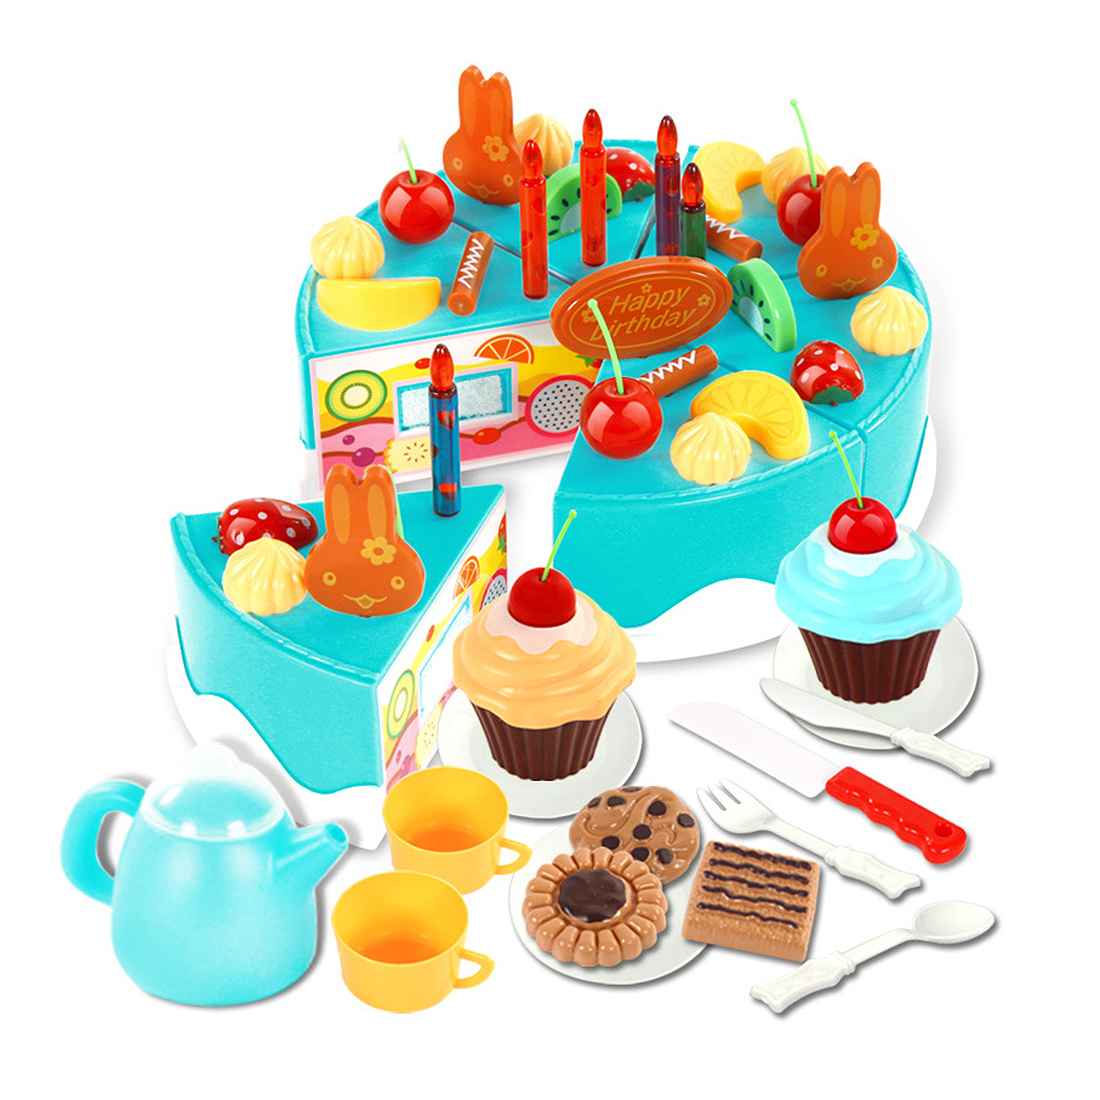 54pcs Kids Plastic Kitchen Cutting Toys Birthday Cake Pretend